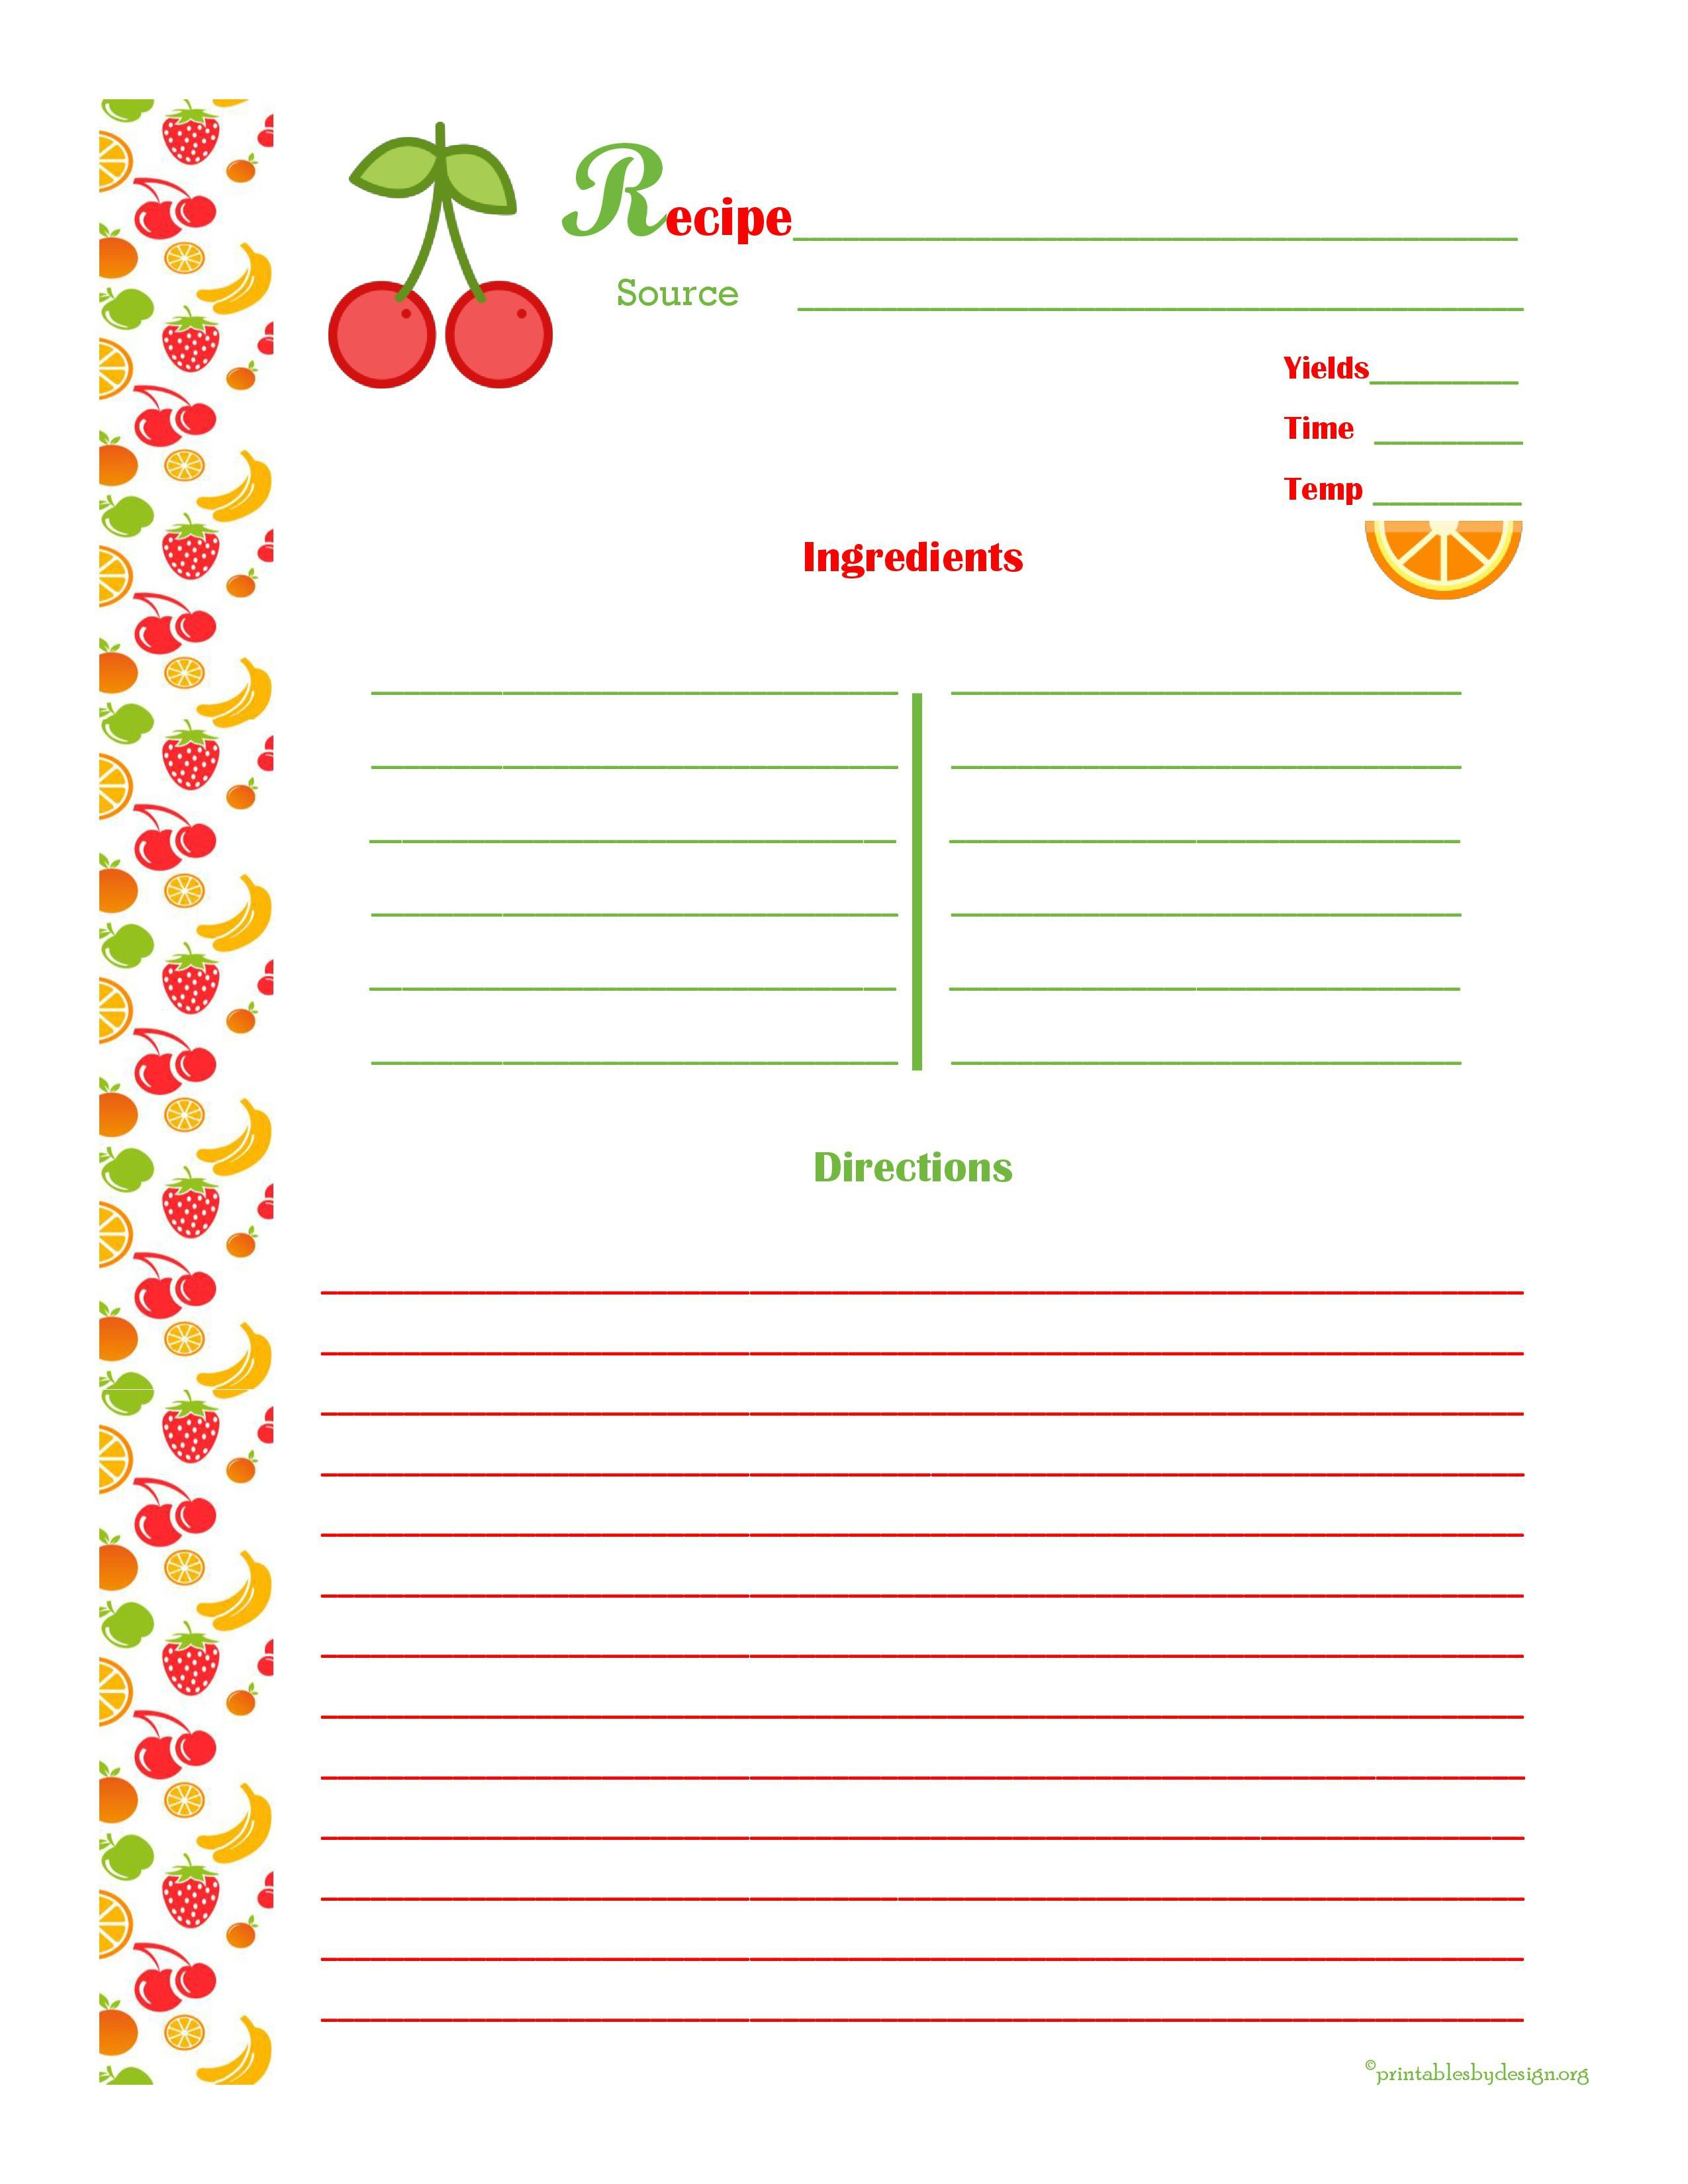 013 Imposing Free Recipe Template For Word Highest Quality  Book Editable Card Microsoft 4x6 PageFull